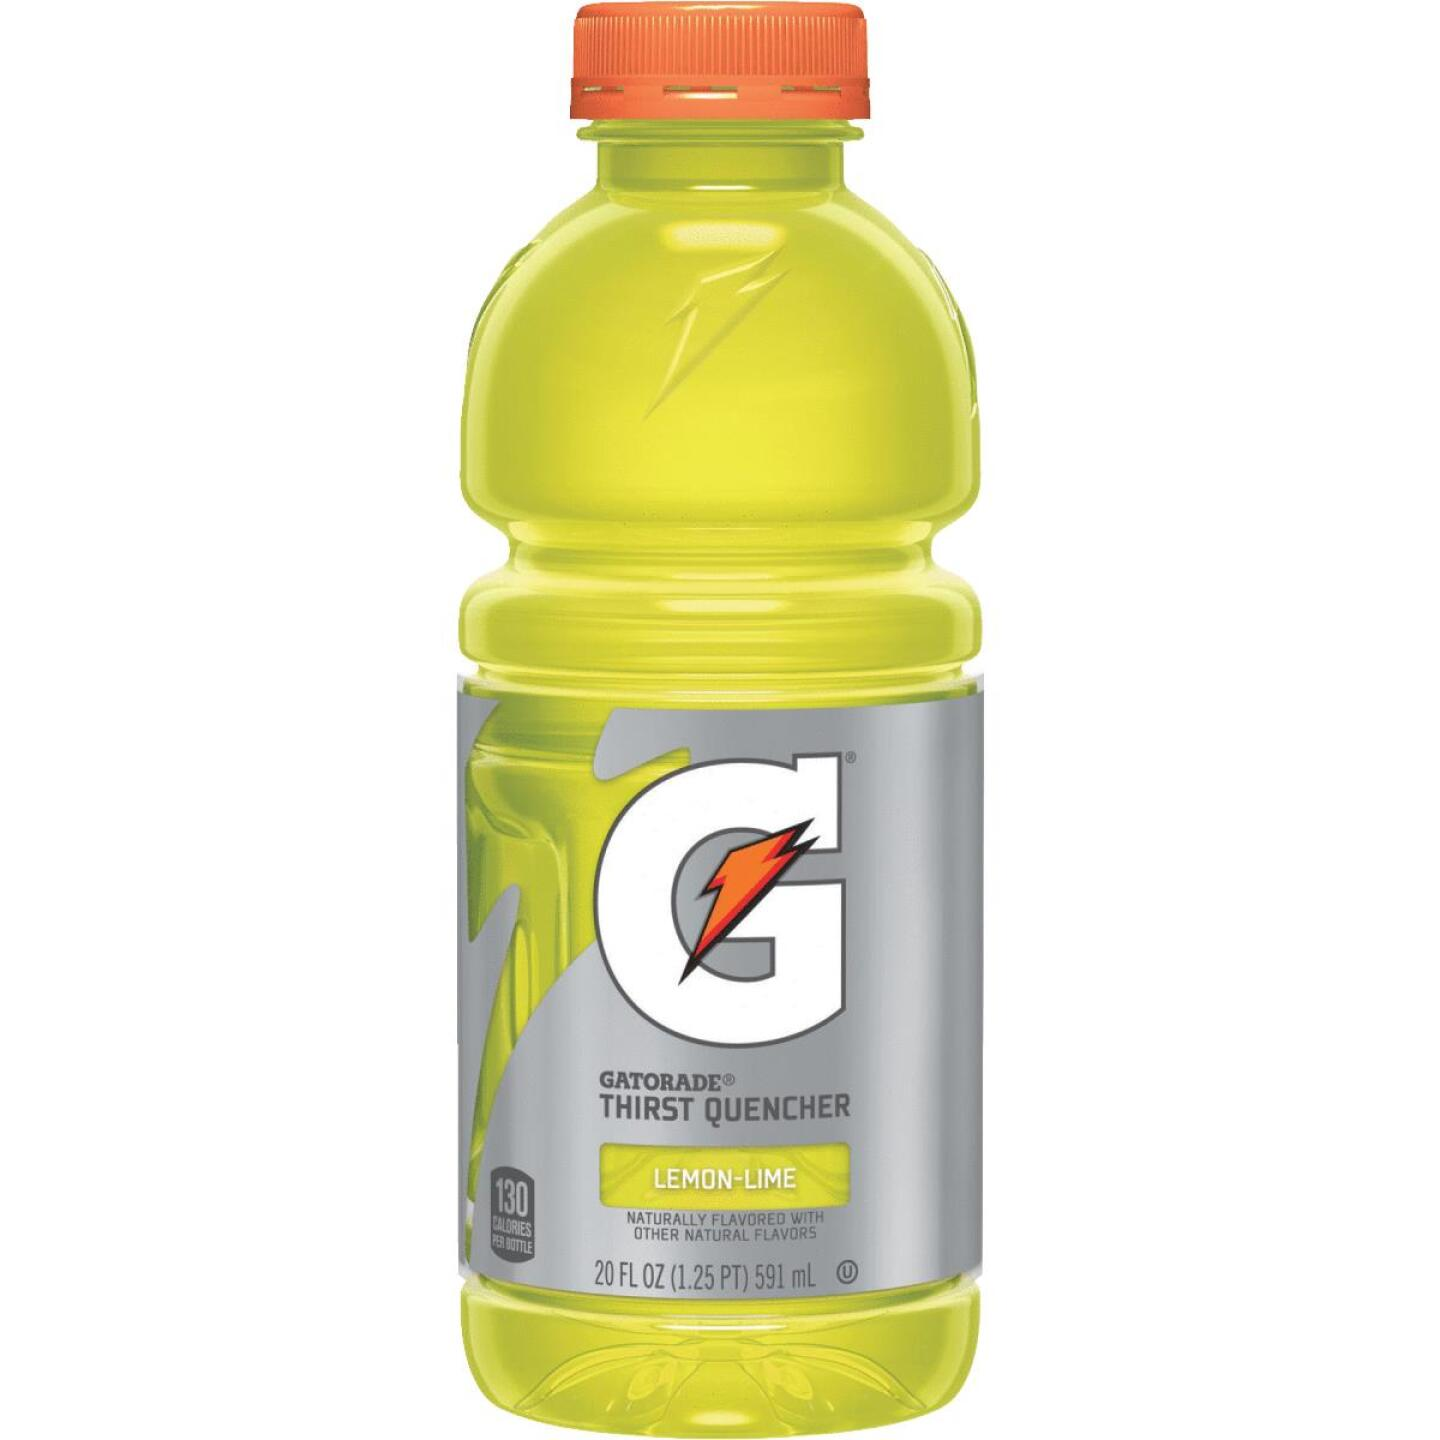 Gatorade 20 Oz. Lemon-Lime Wide Mouth Thirst Quencher Drink (24-Pack) Image 1